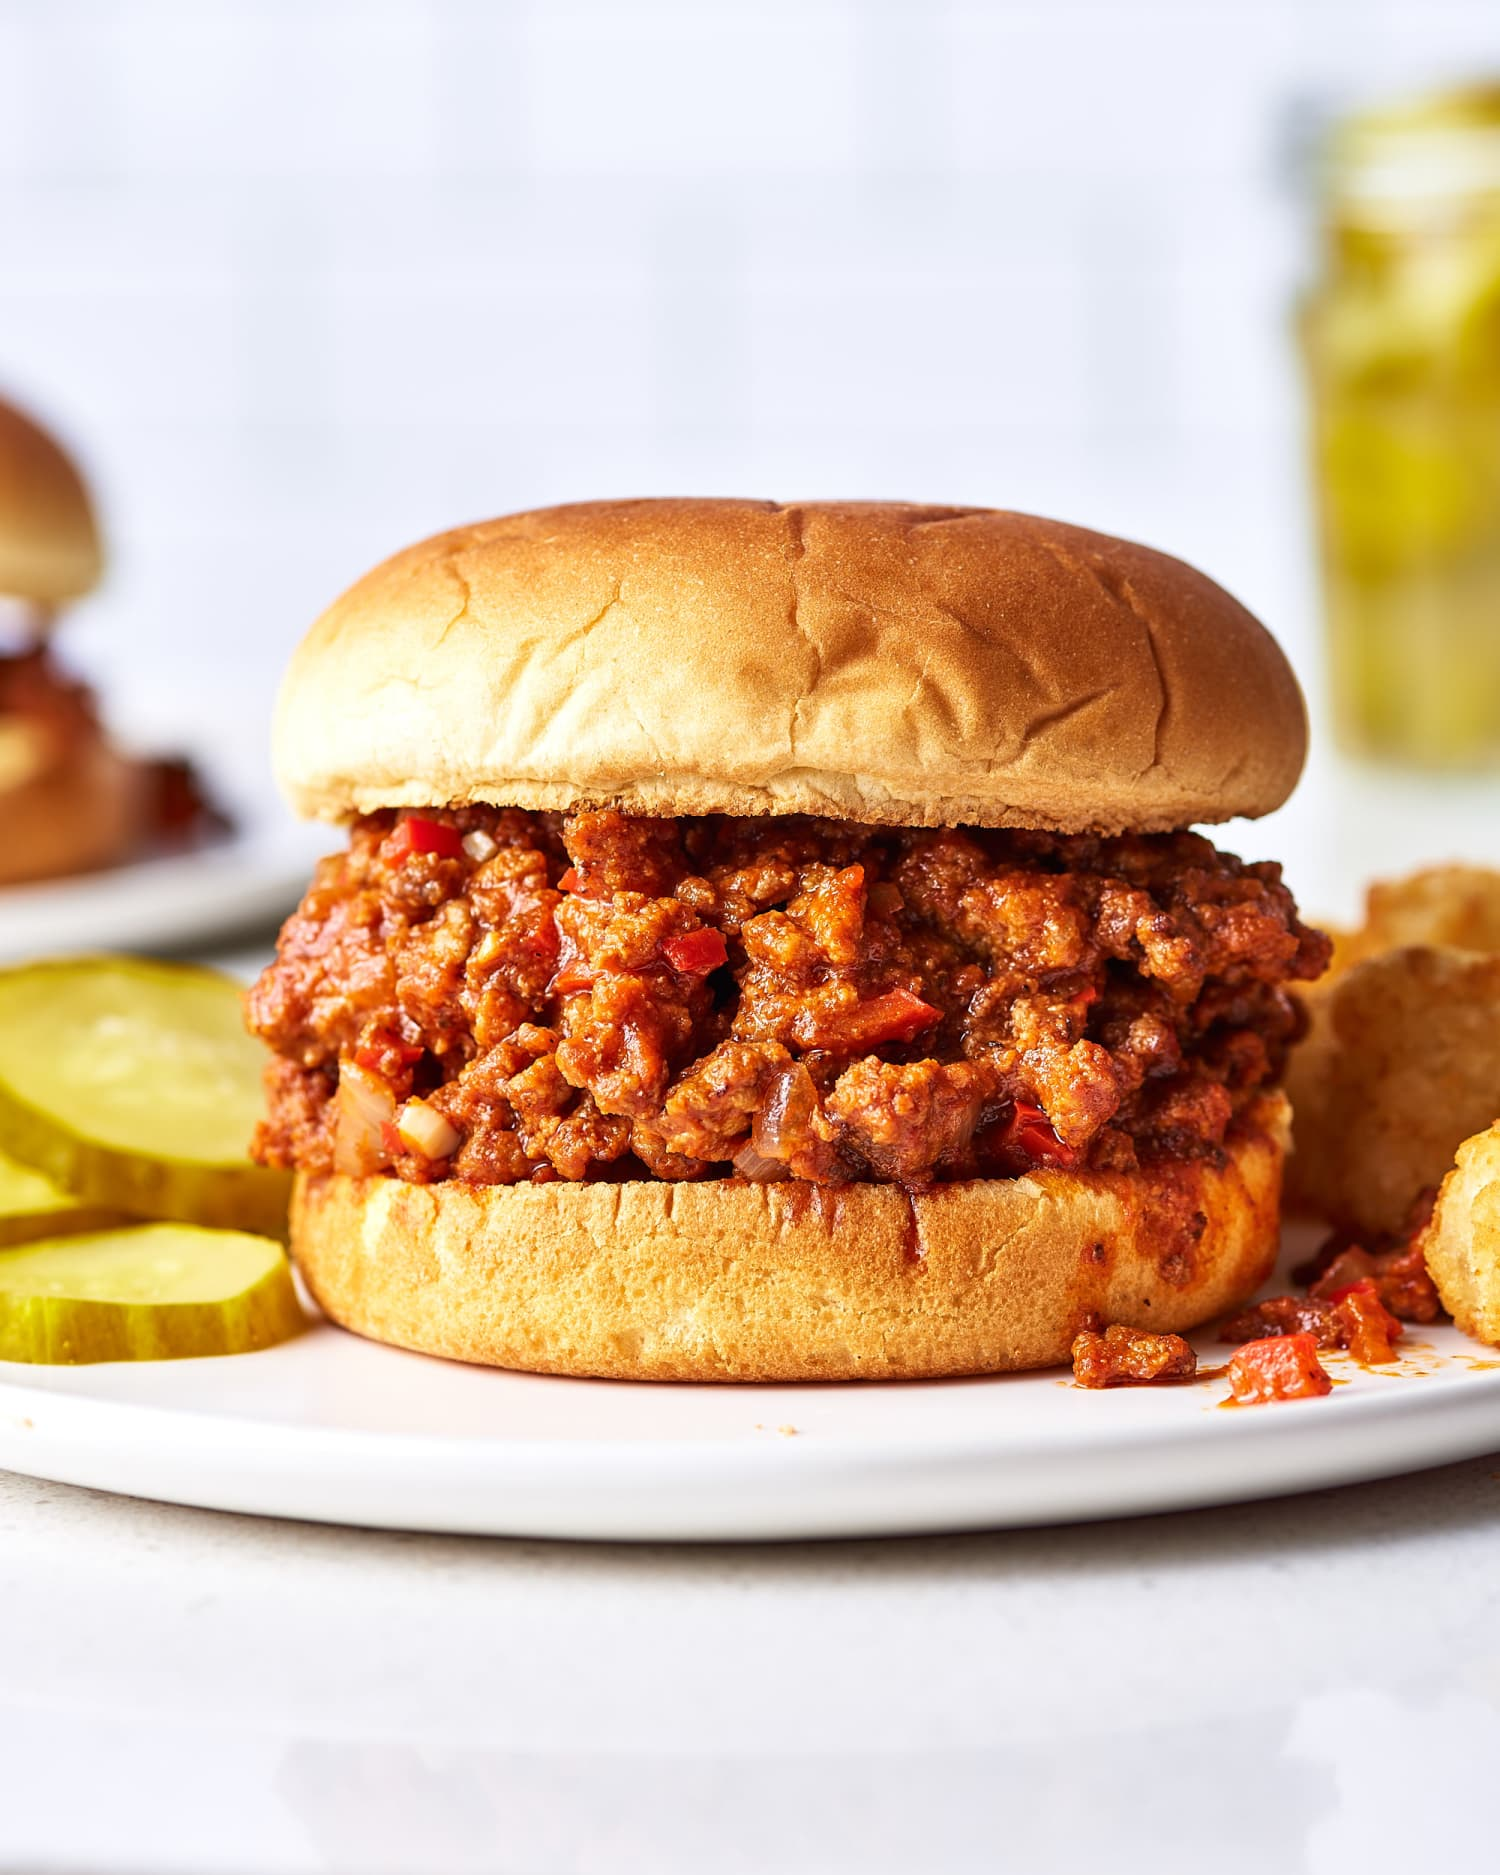 How To Make Quick & Easy Sloppy Joes